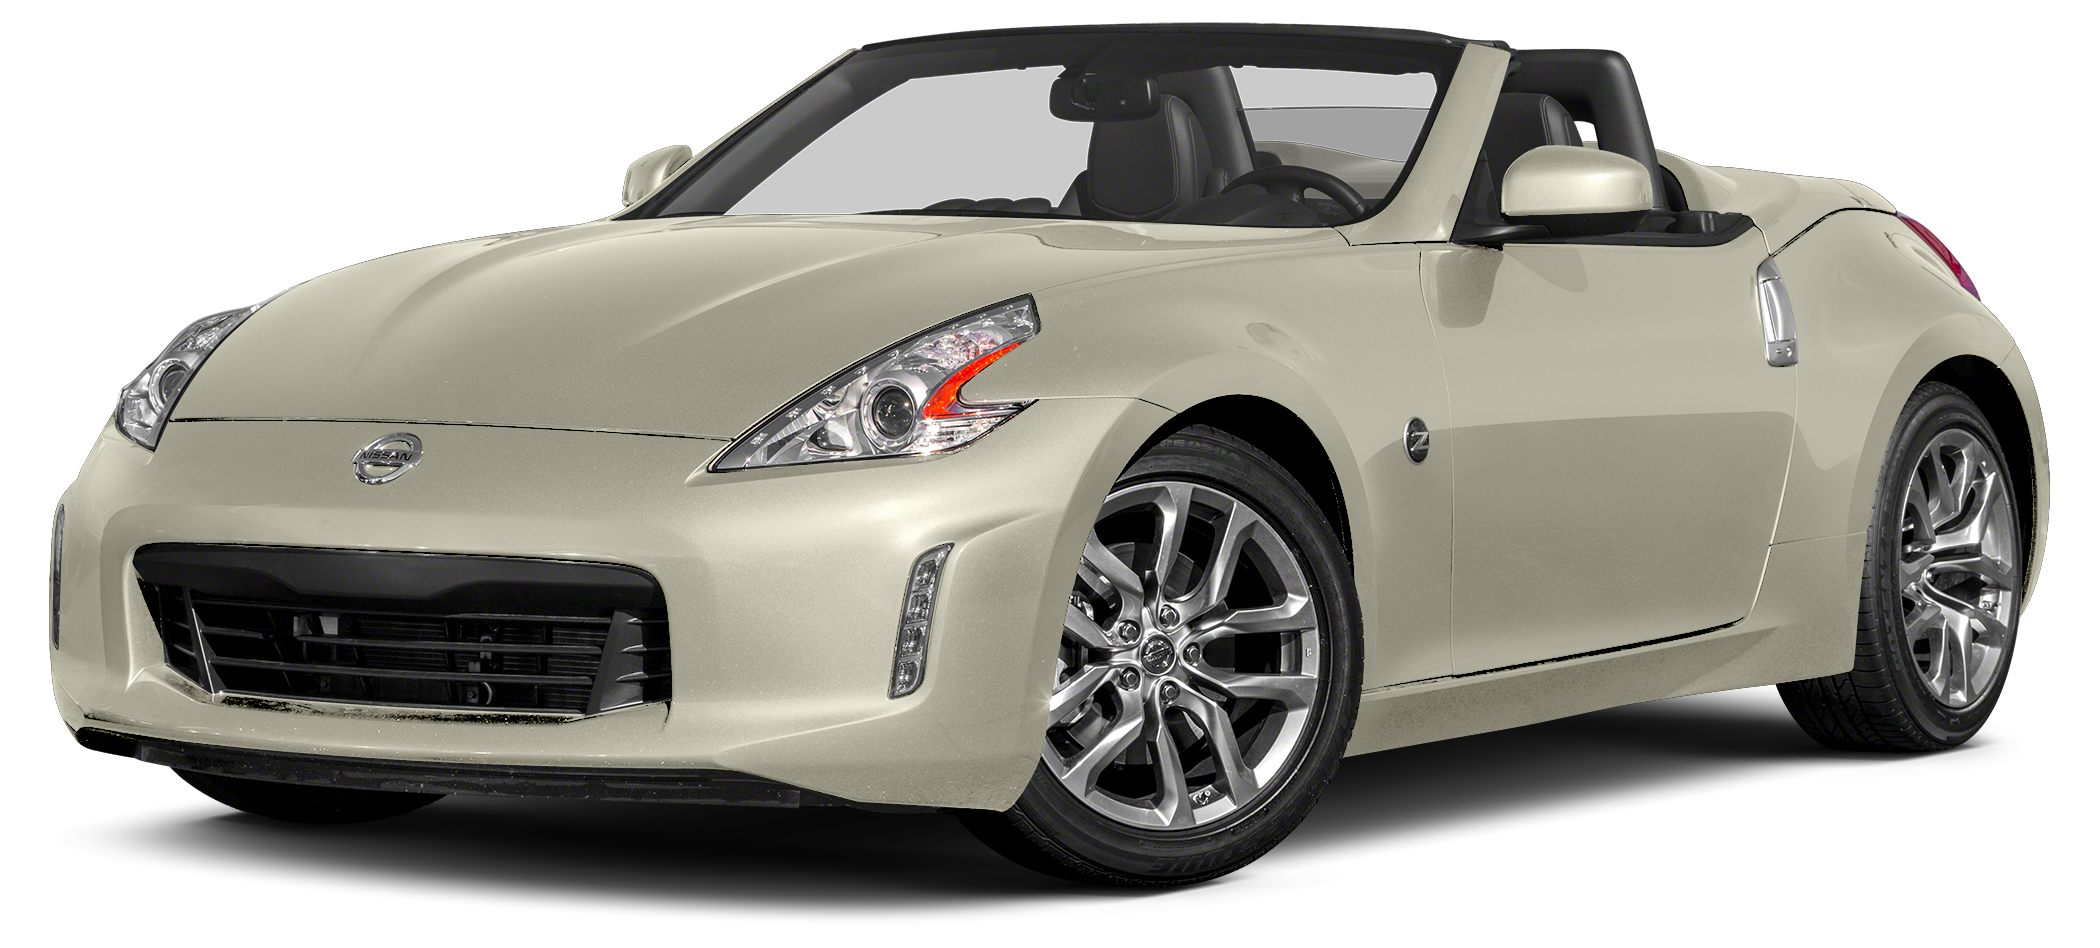 2016 Nissan 370Z Touring Miles 0Color Pearl White Stock 33249 VIN JN1AZ4FH2GM910155